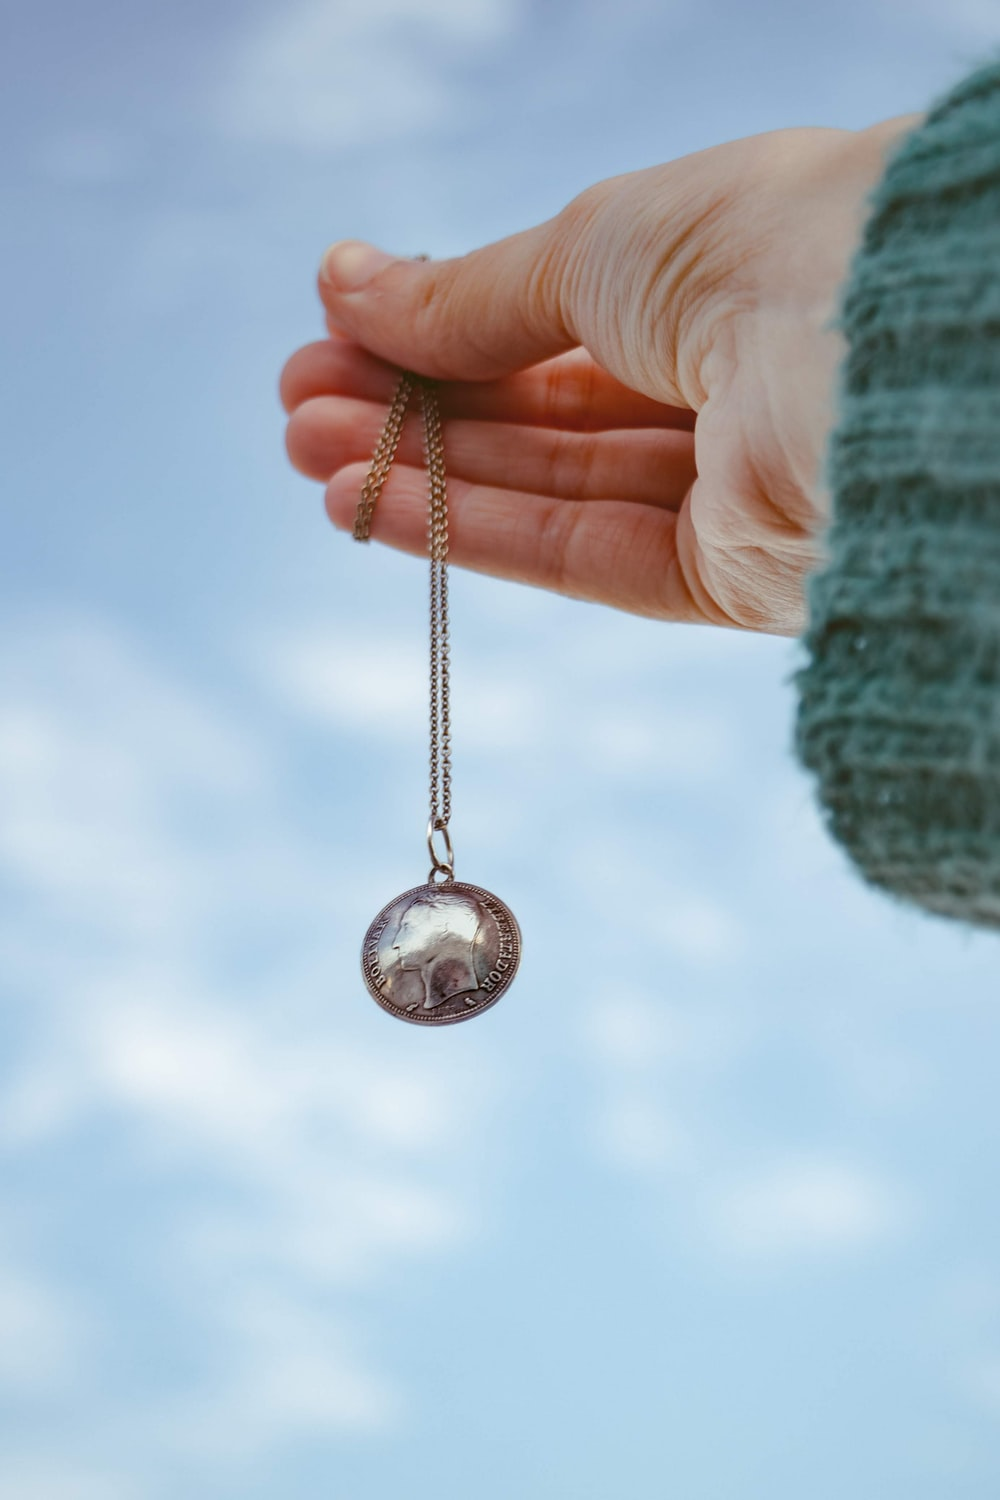 silver round pendant on persons hand